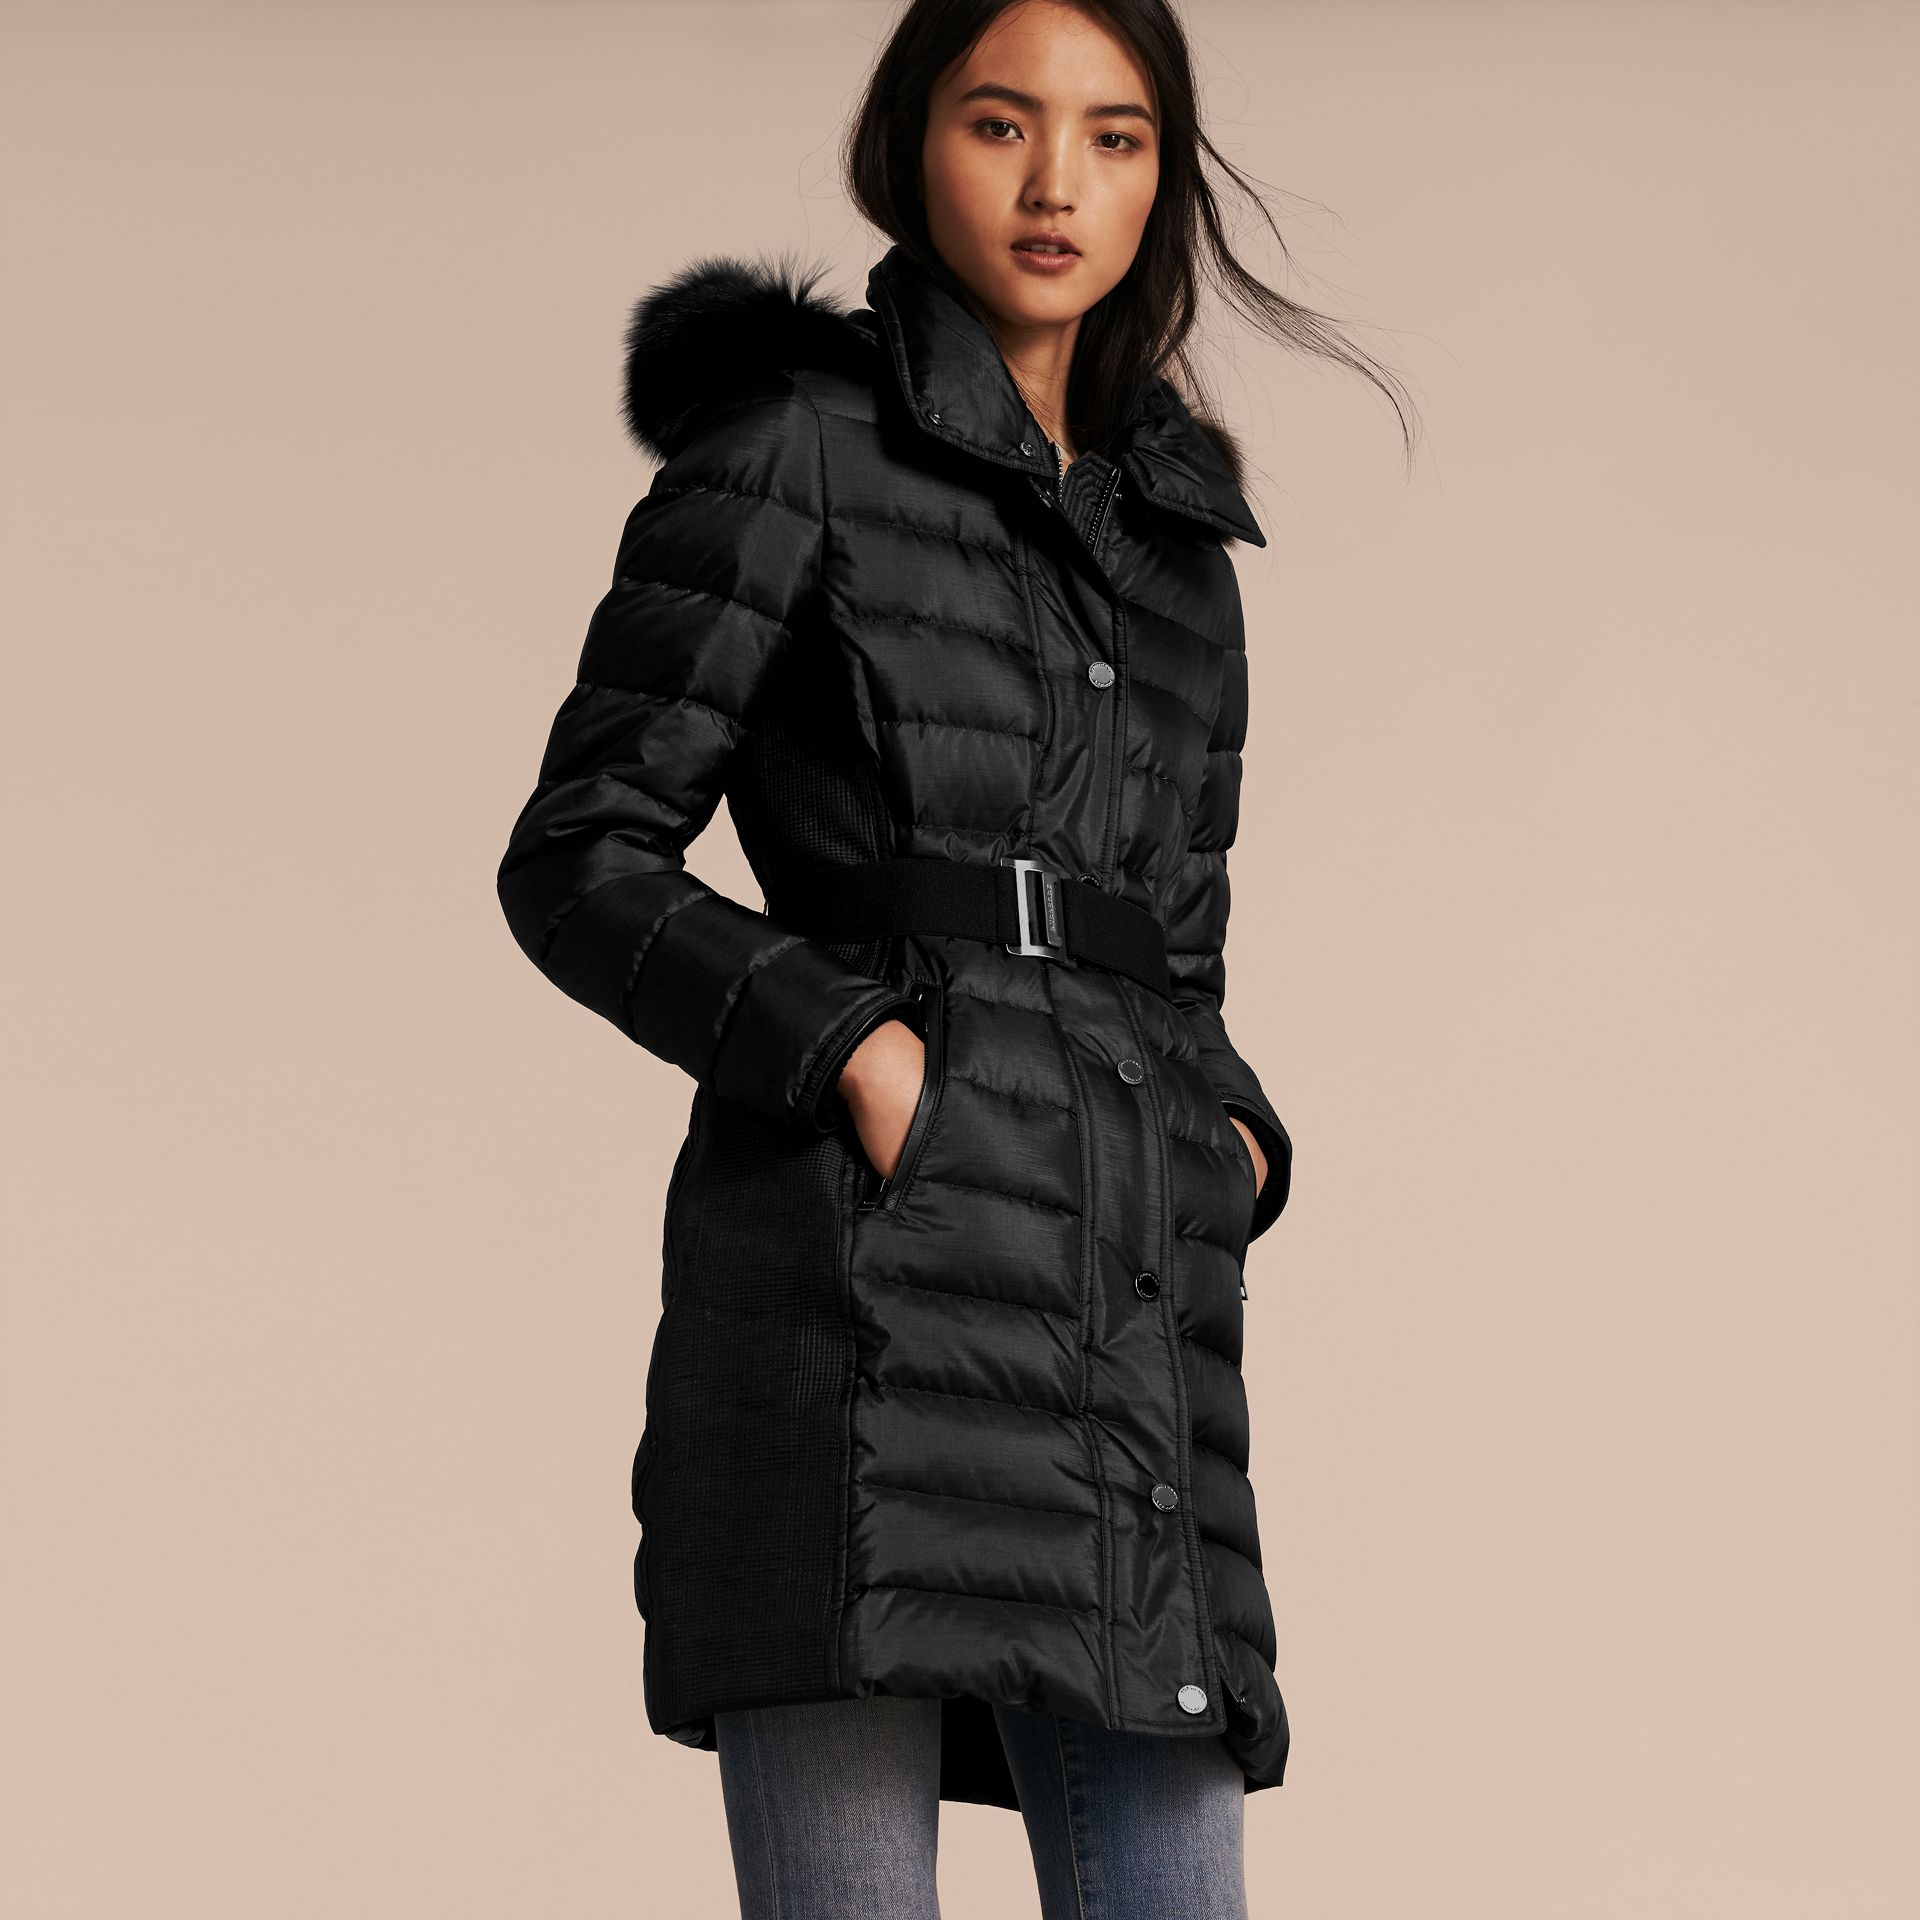 Black Down-filled Coat with Fur-trimmed Hood Black - gallery image 6